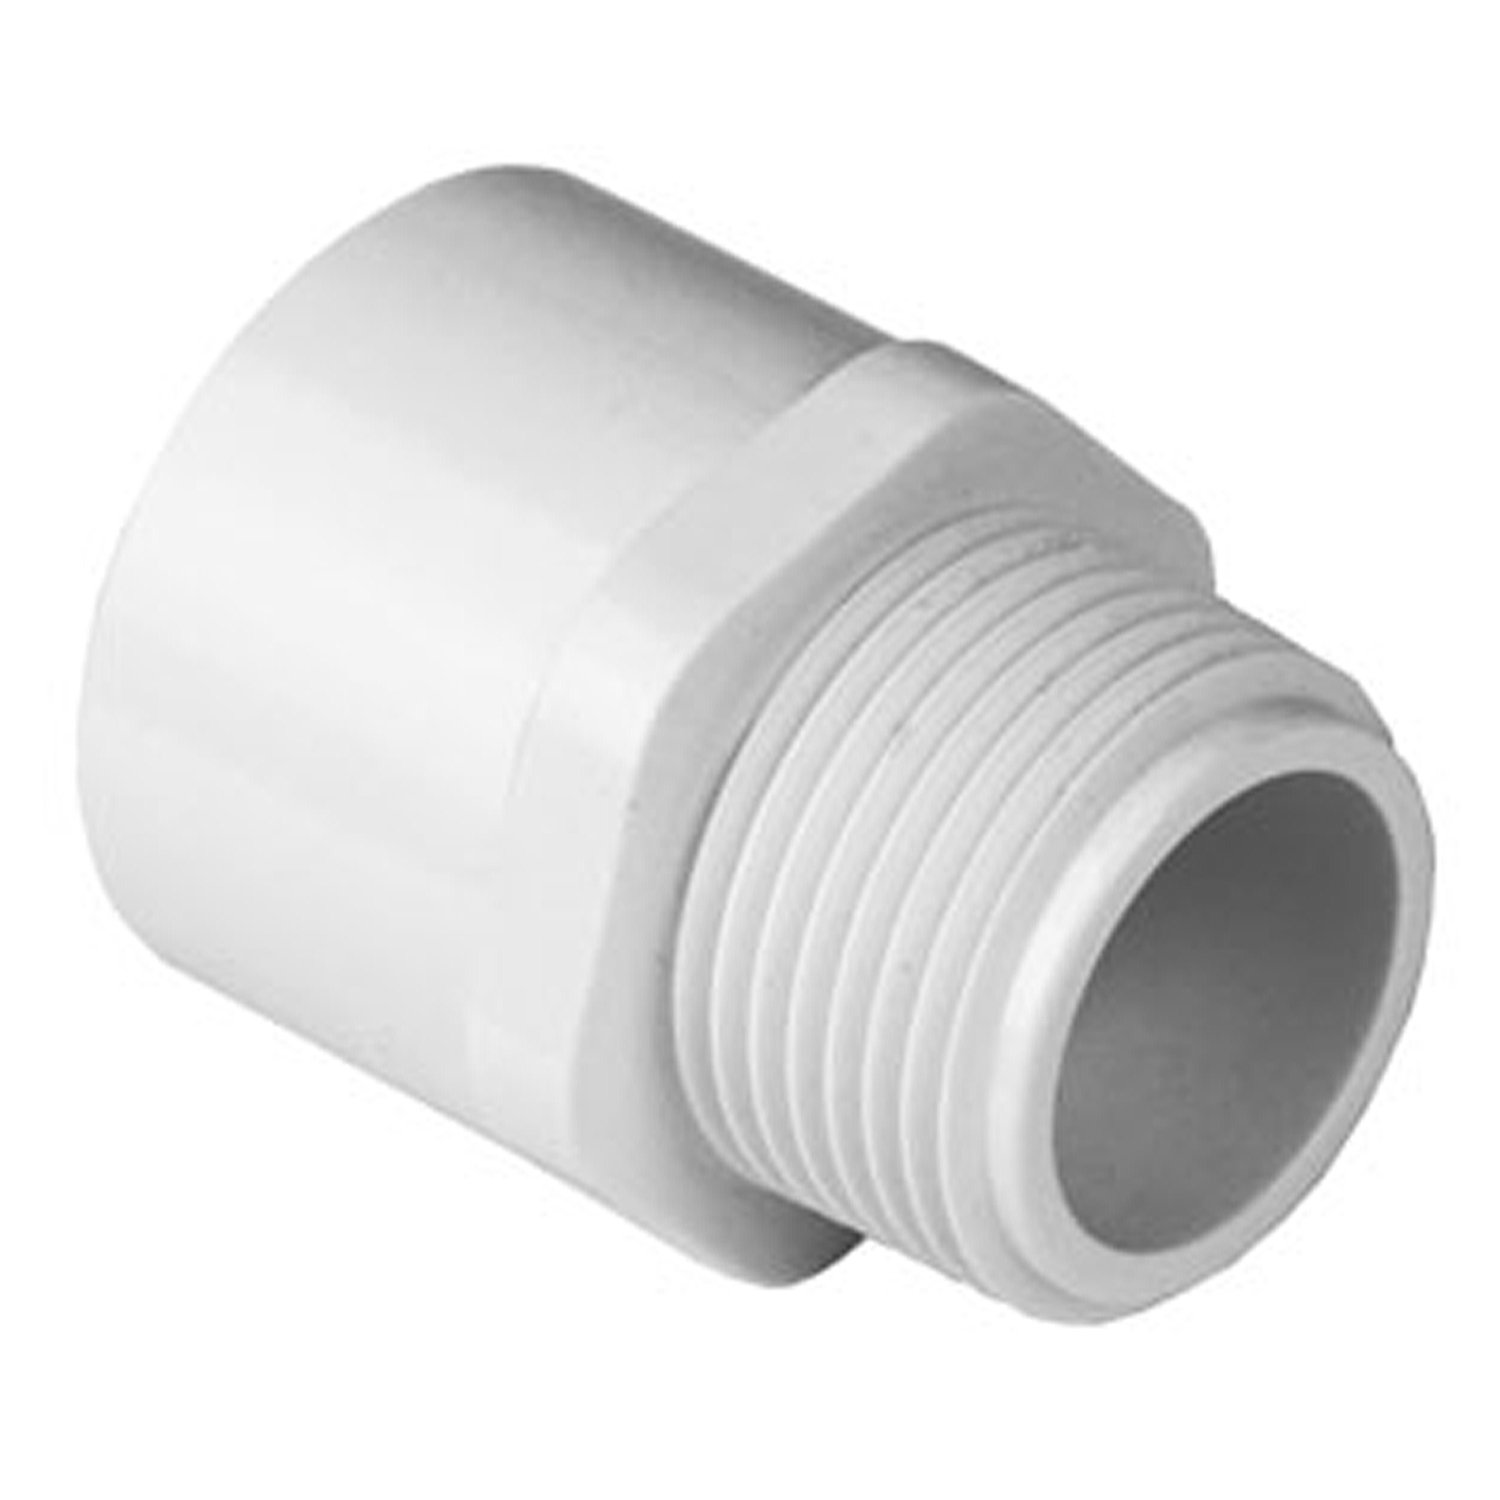 Spears 436 Series PVC Pipe Fitting, Adapter, Schedule 40, White, 1-1/4